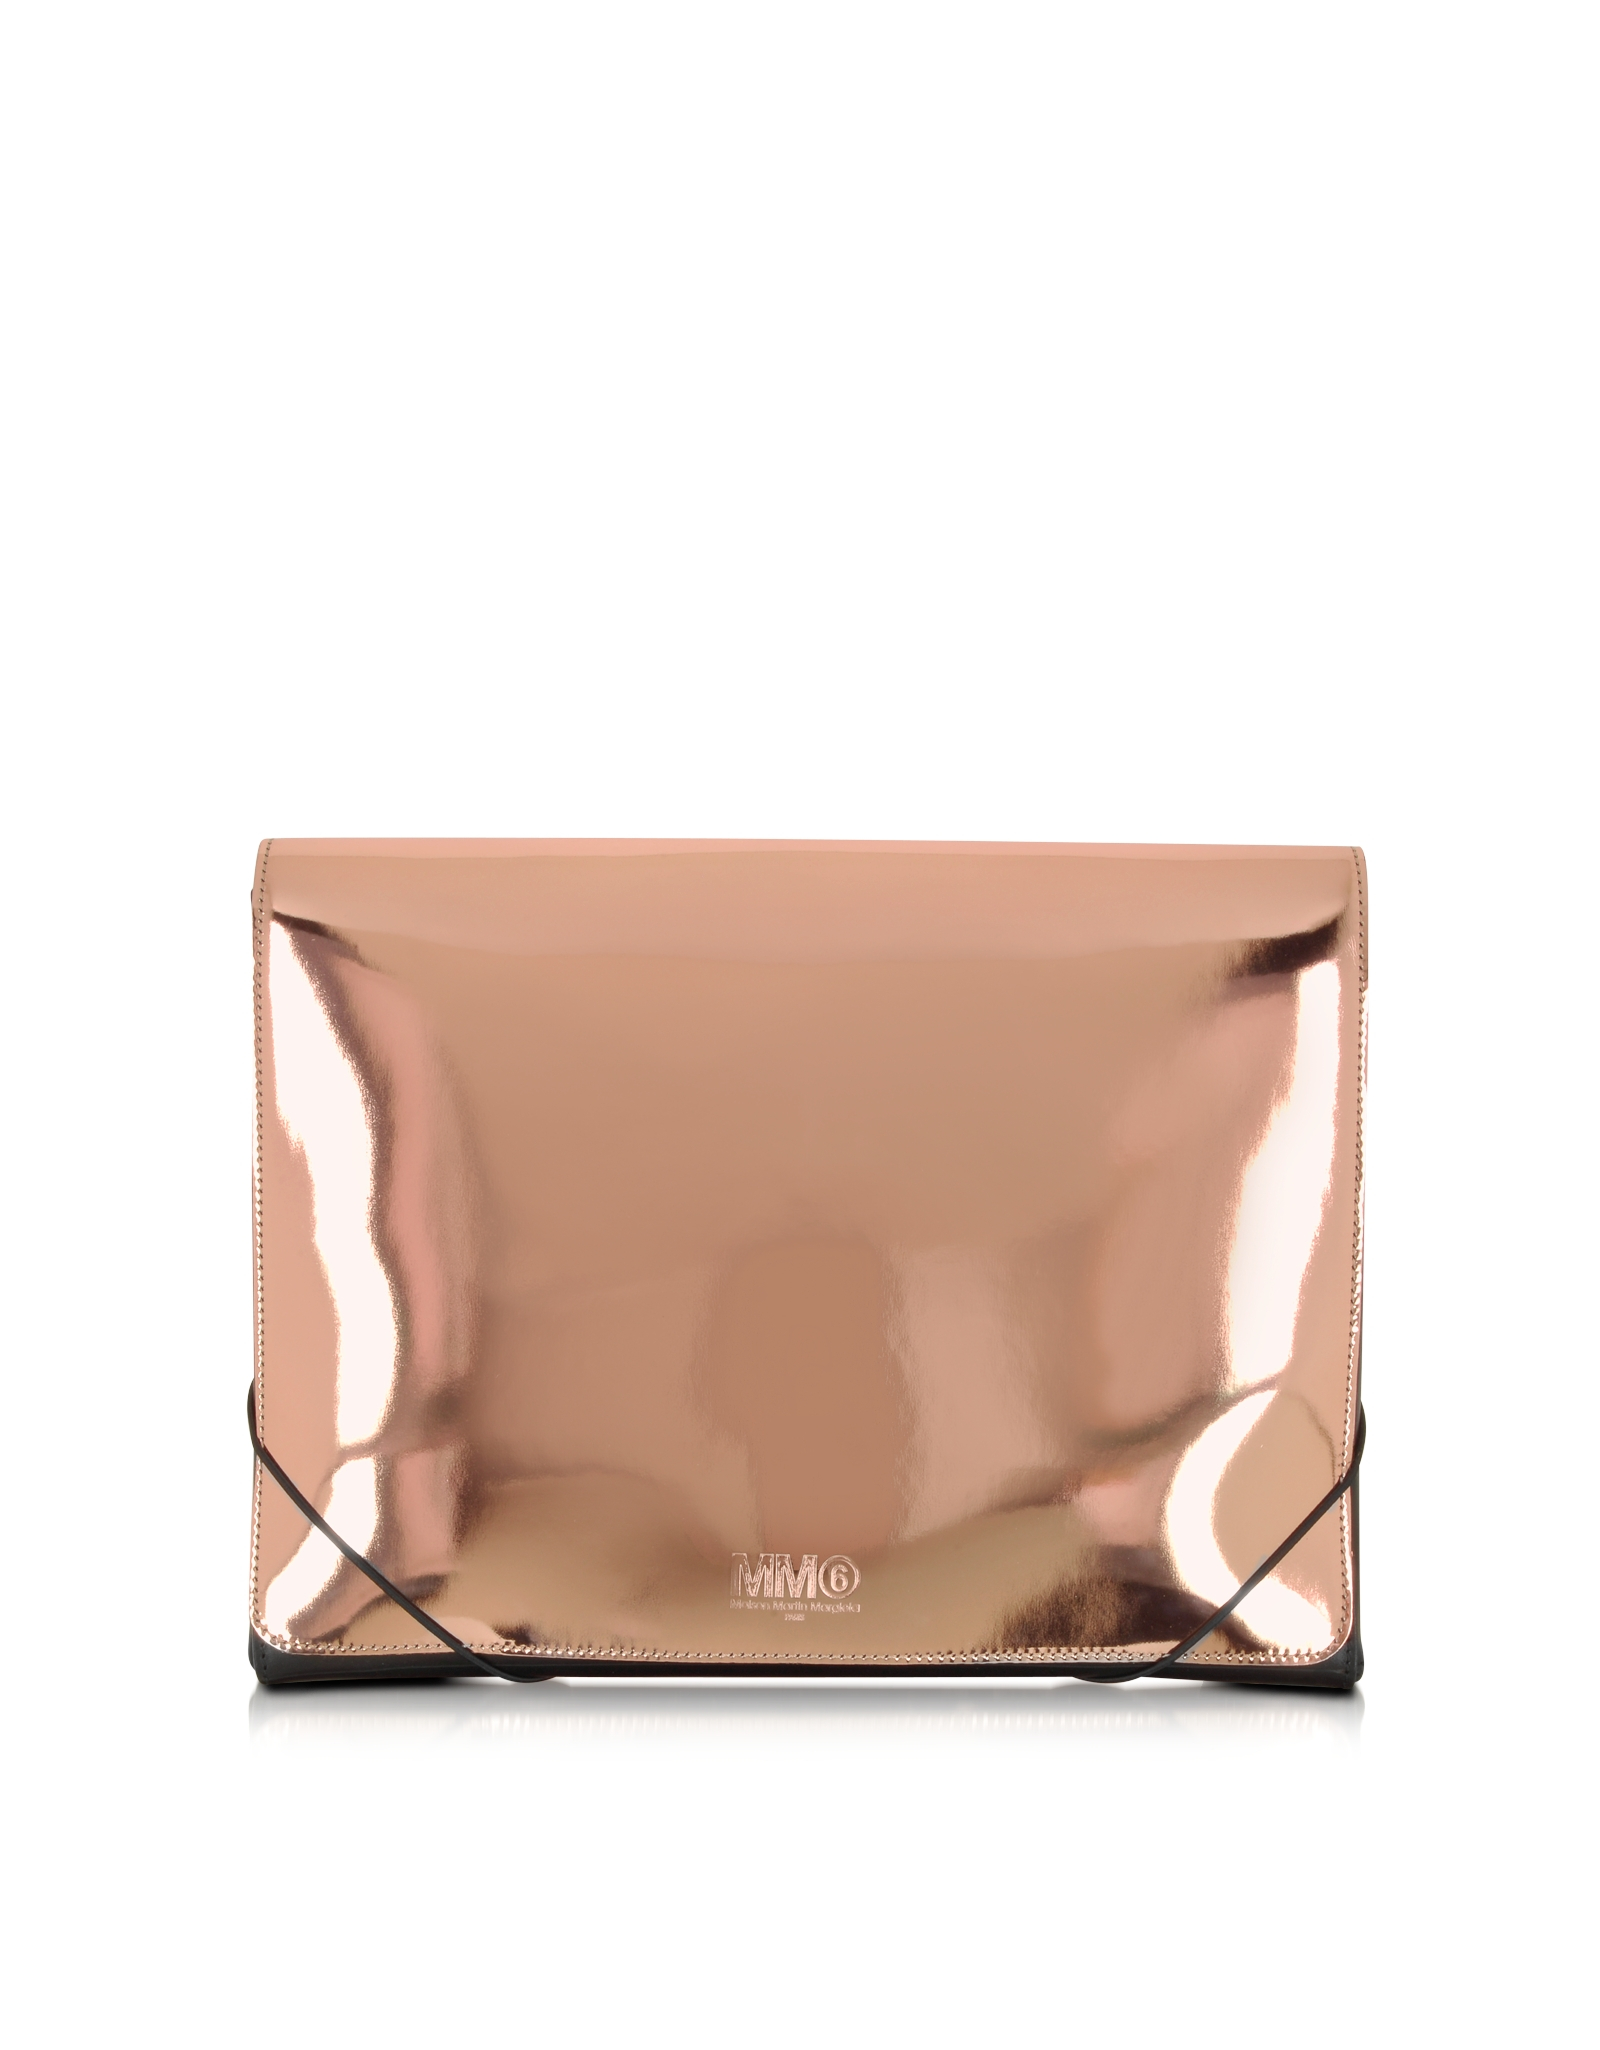 Mm6 by maison martin margiela metallic leather clutch in for Mm6 maison margiela